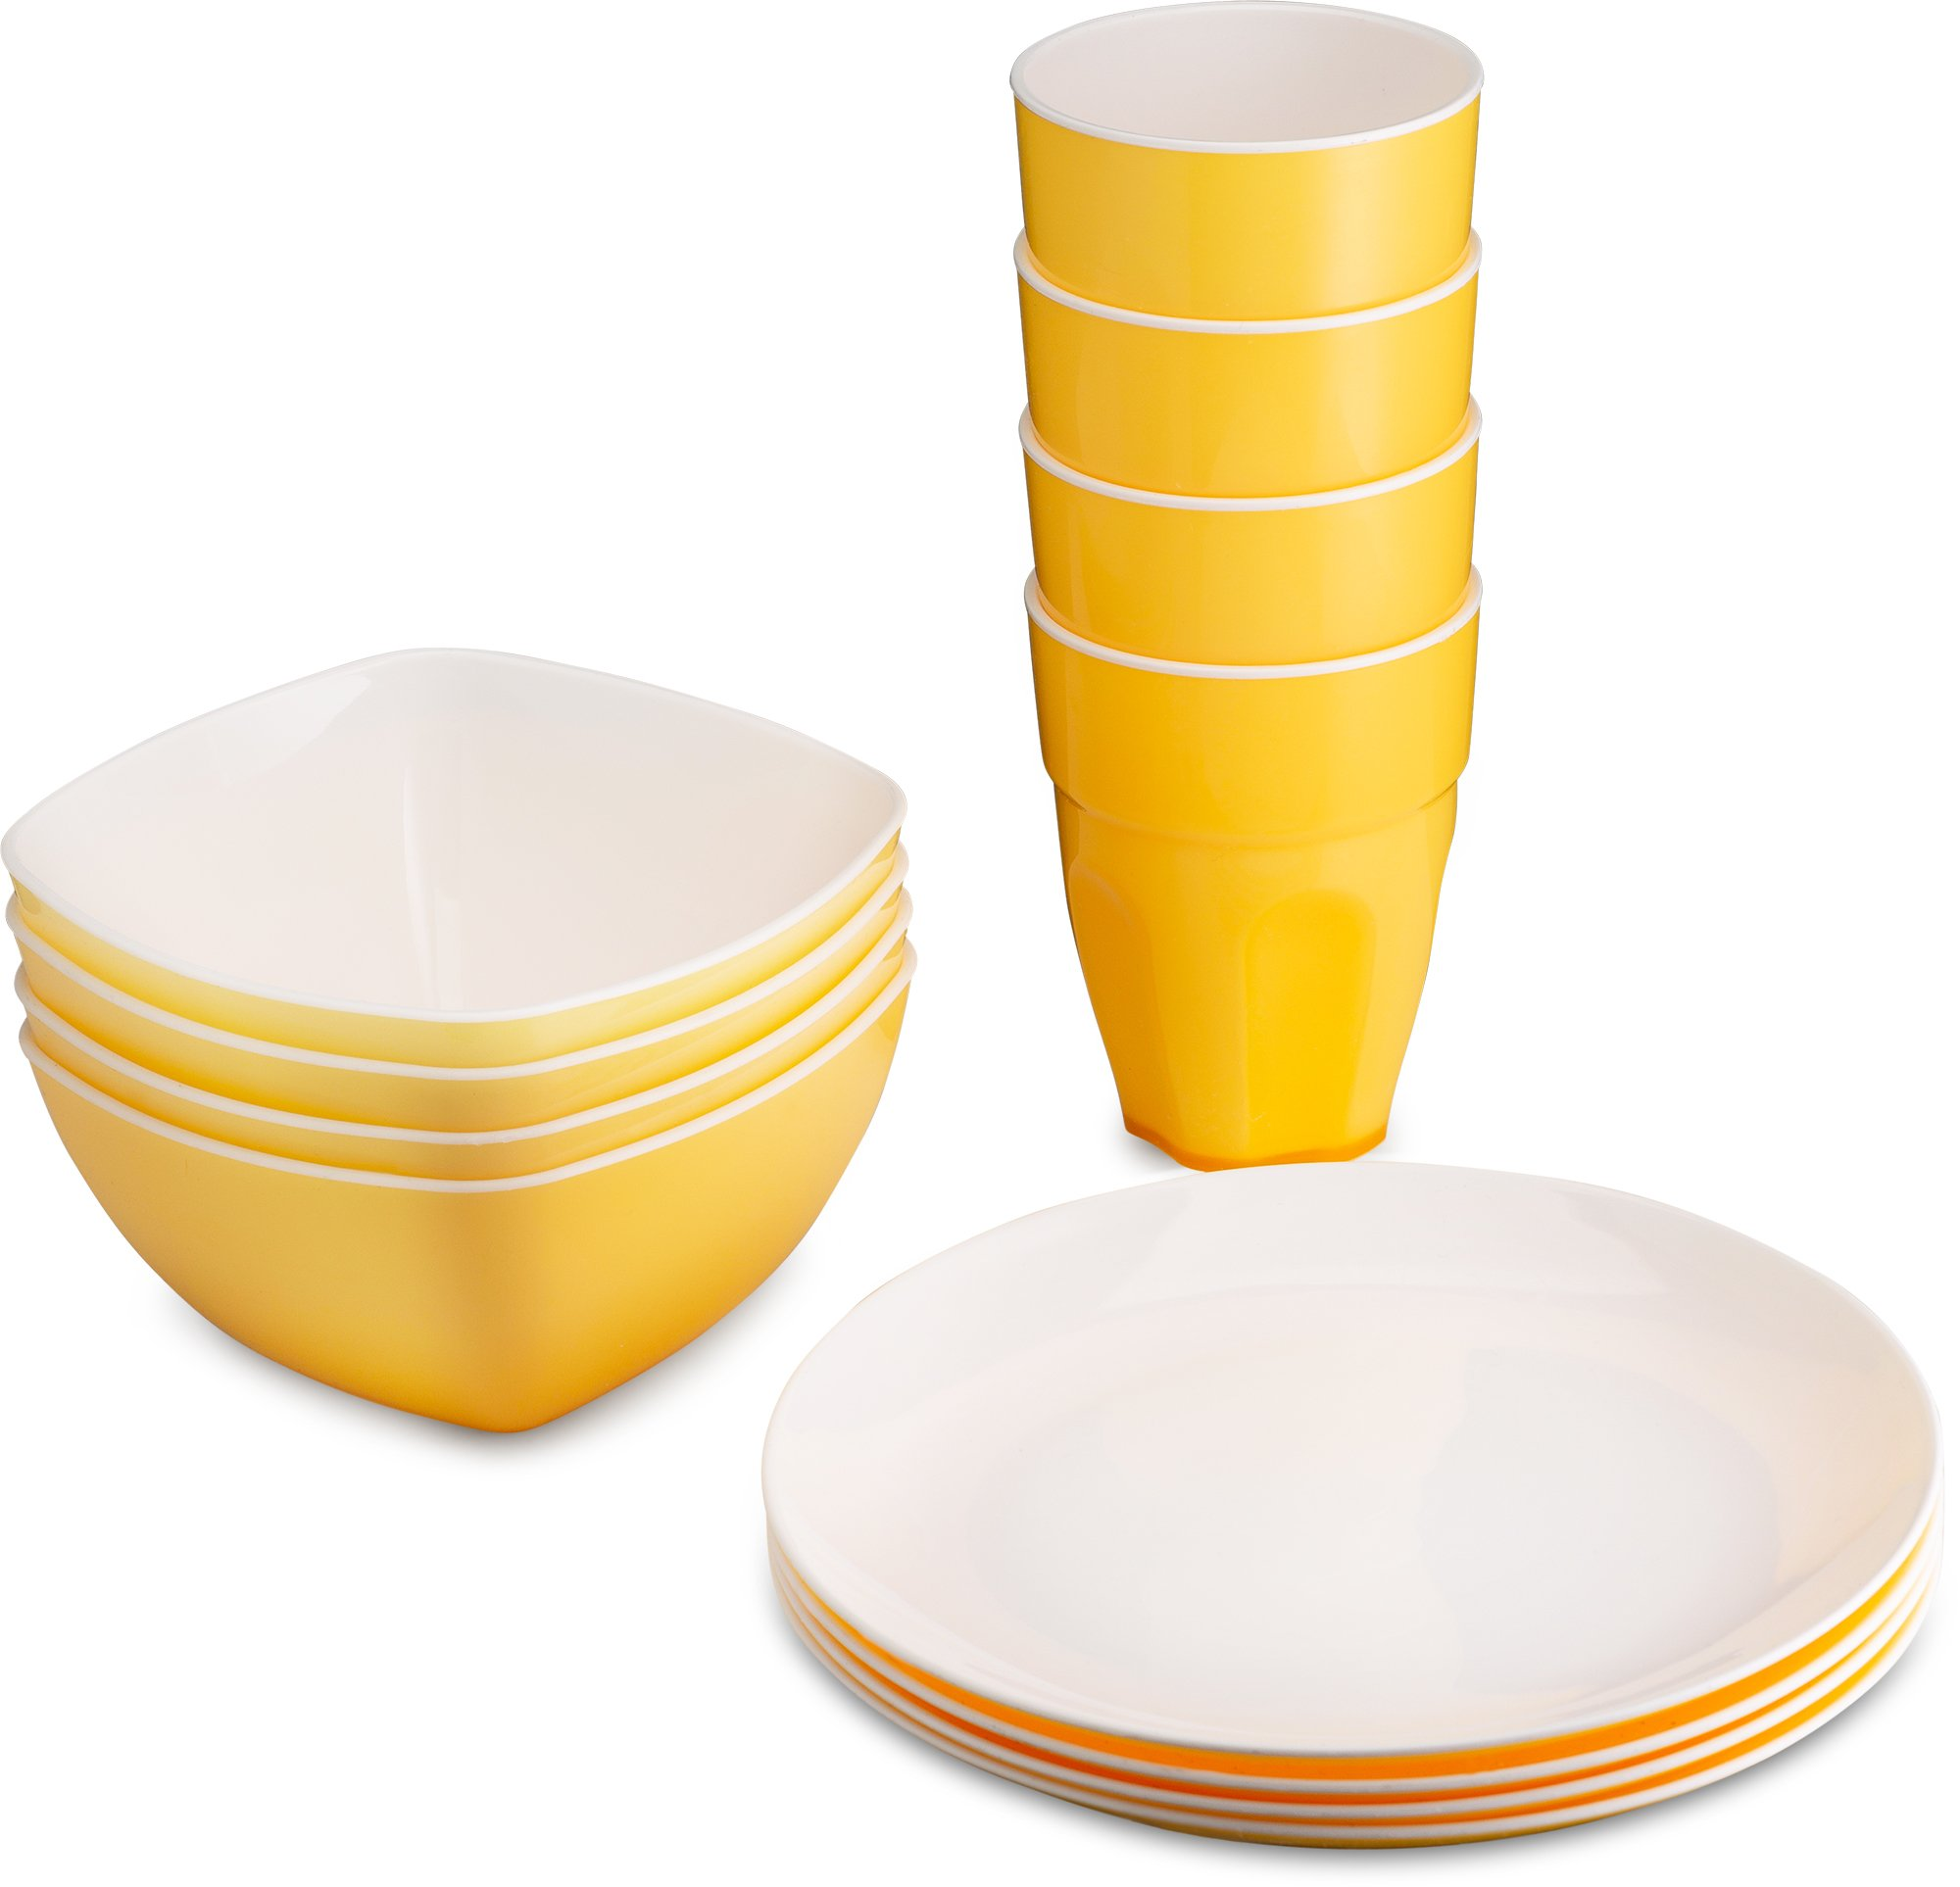 PLASTI HOME Reusable Plastic Dinnerware Set (12pcs) – Fancy Hard Plastic Plates, Bows & Cups In Yellow Festive Colors – Microwaveable & Dishwasher Safe Flatware & Tumblers For Daily Use